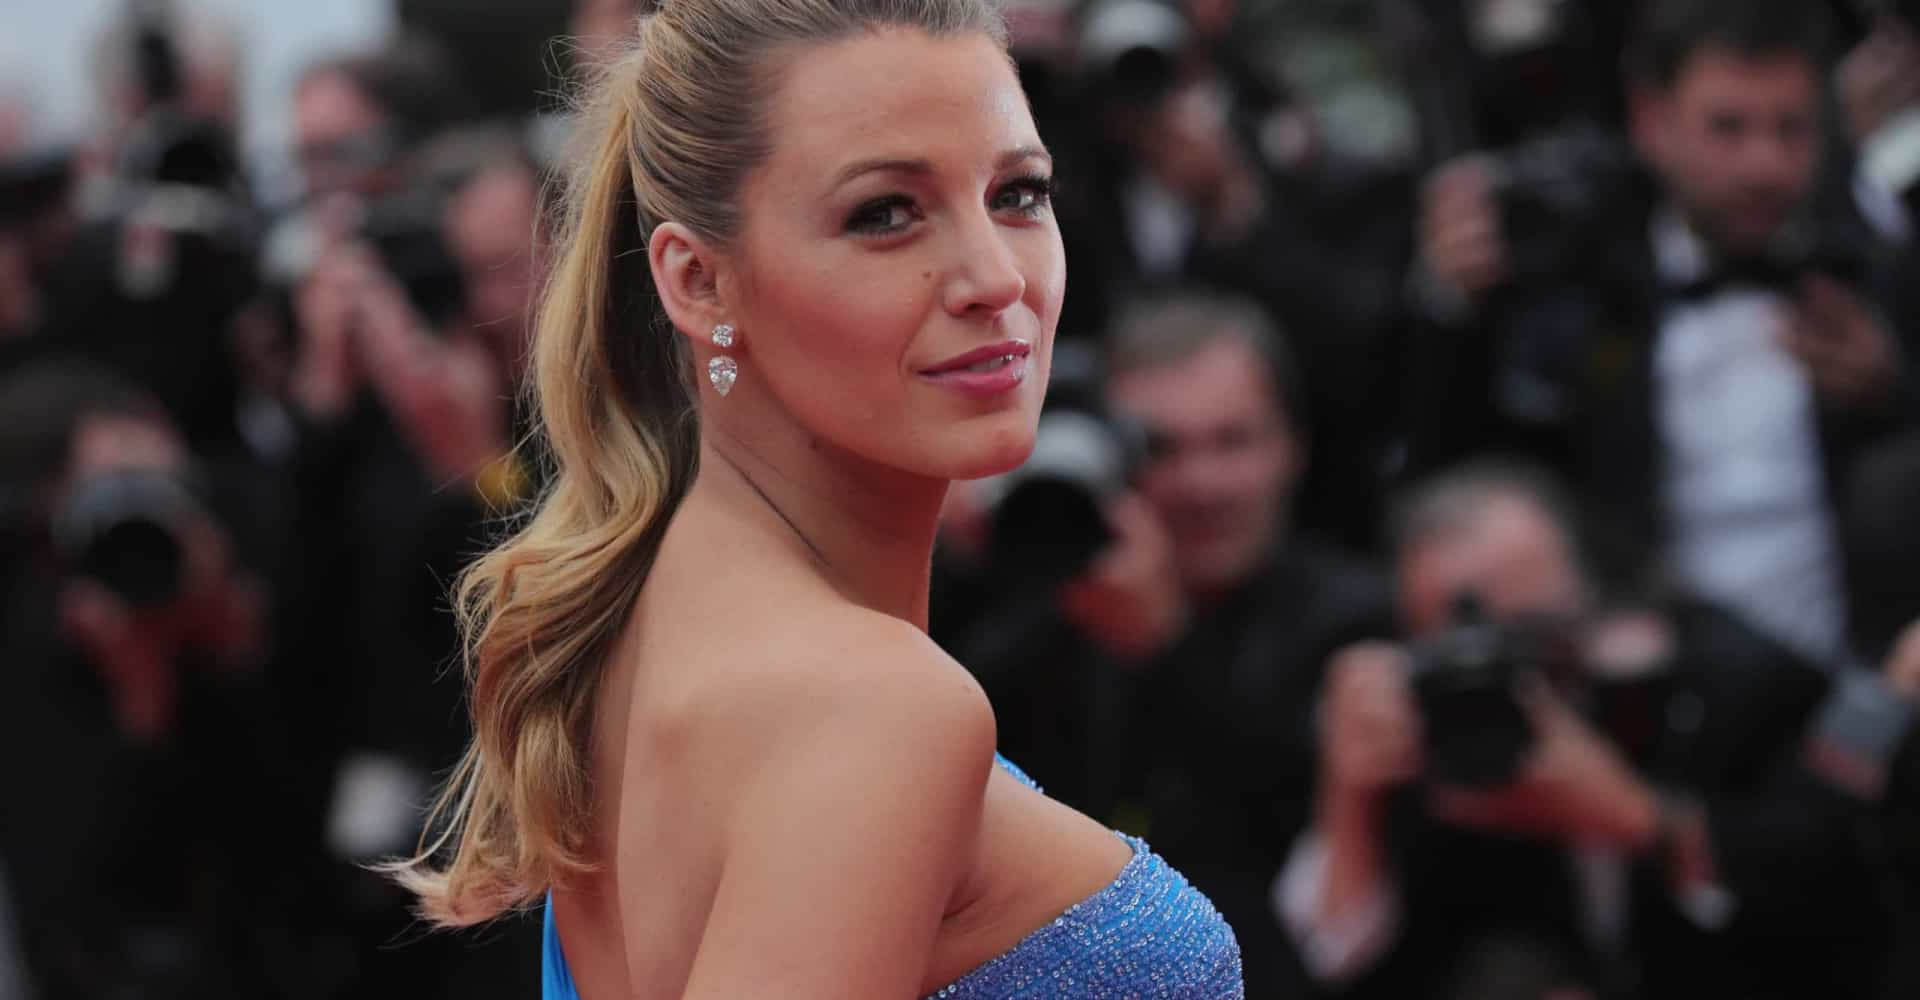 Blake Lively's impeccable style through the years